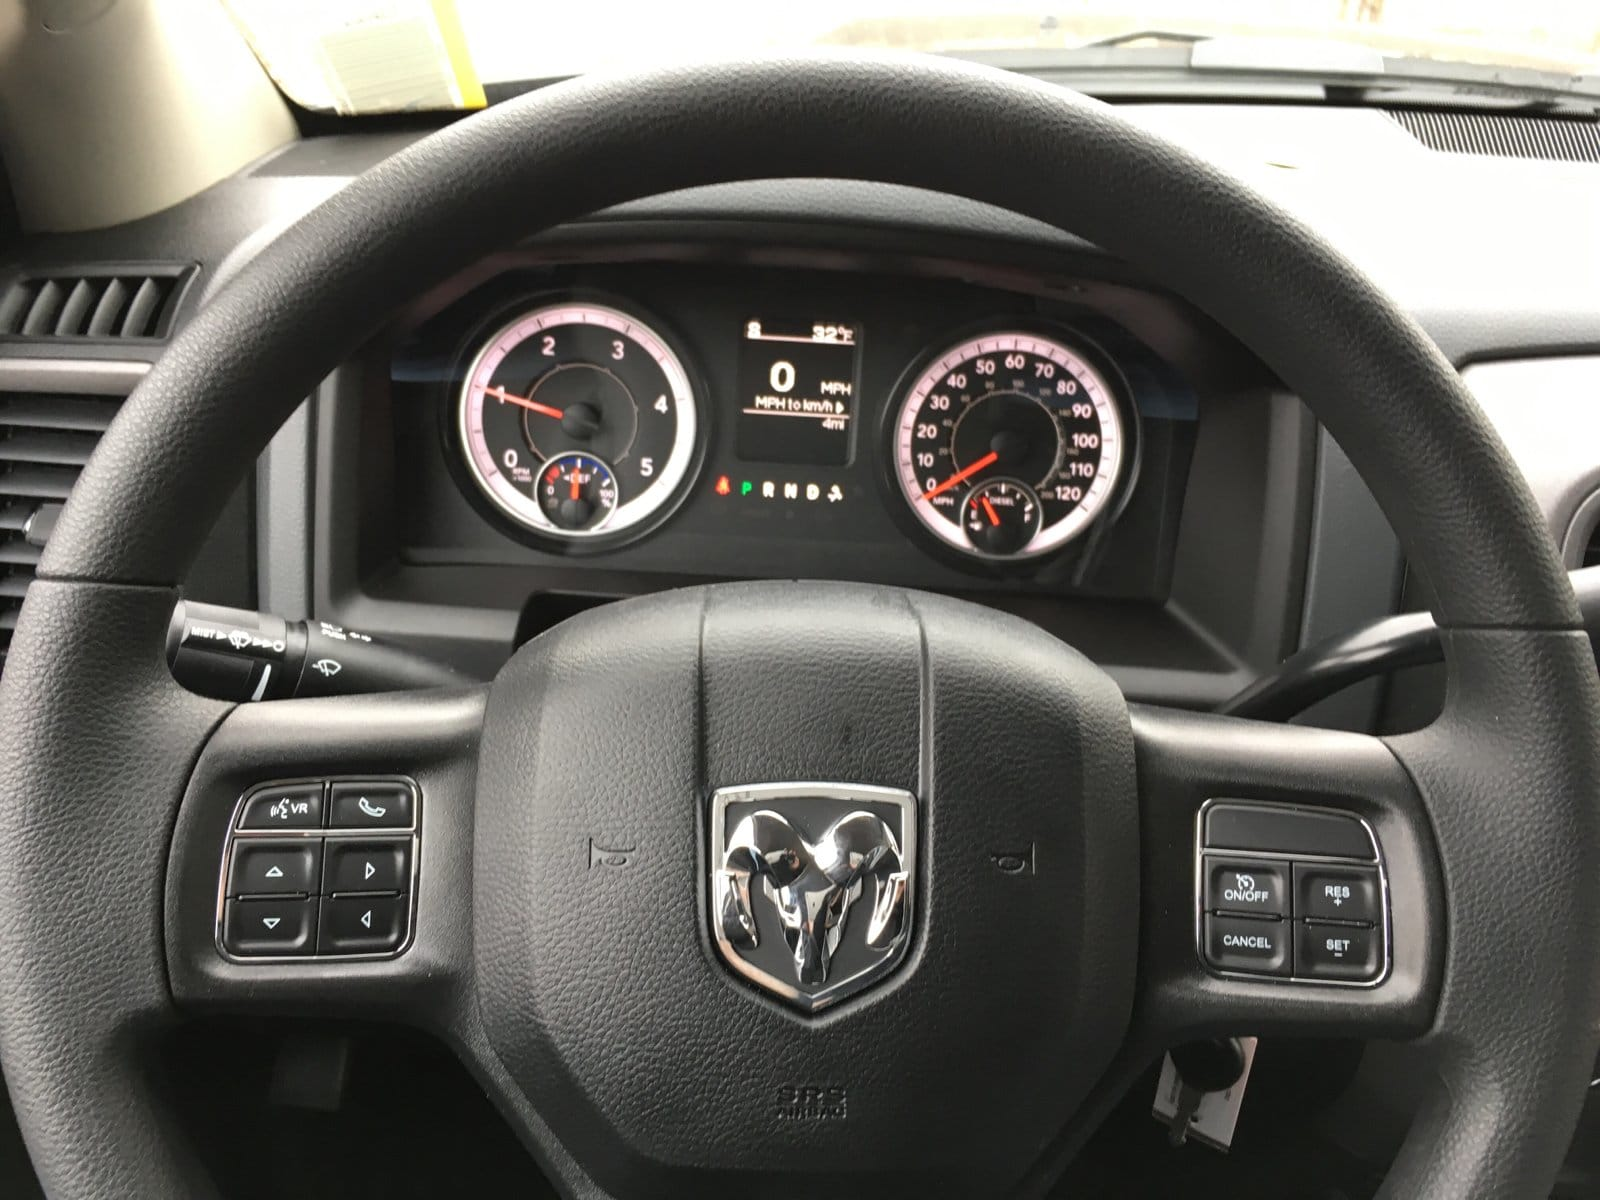 2018 Ram 2500 Crew Cab 4x4, Pickup #1843013 - photo 13